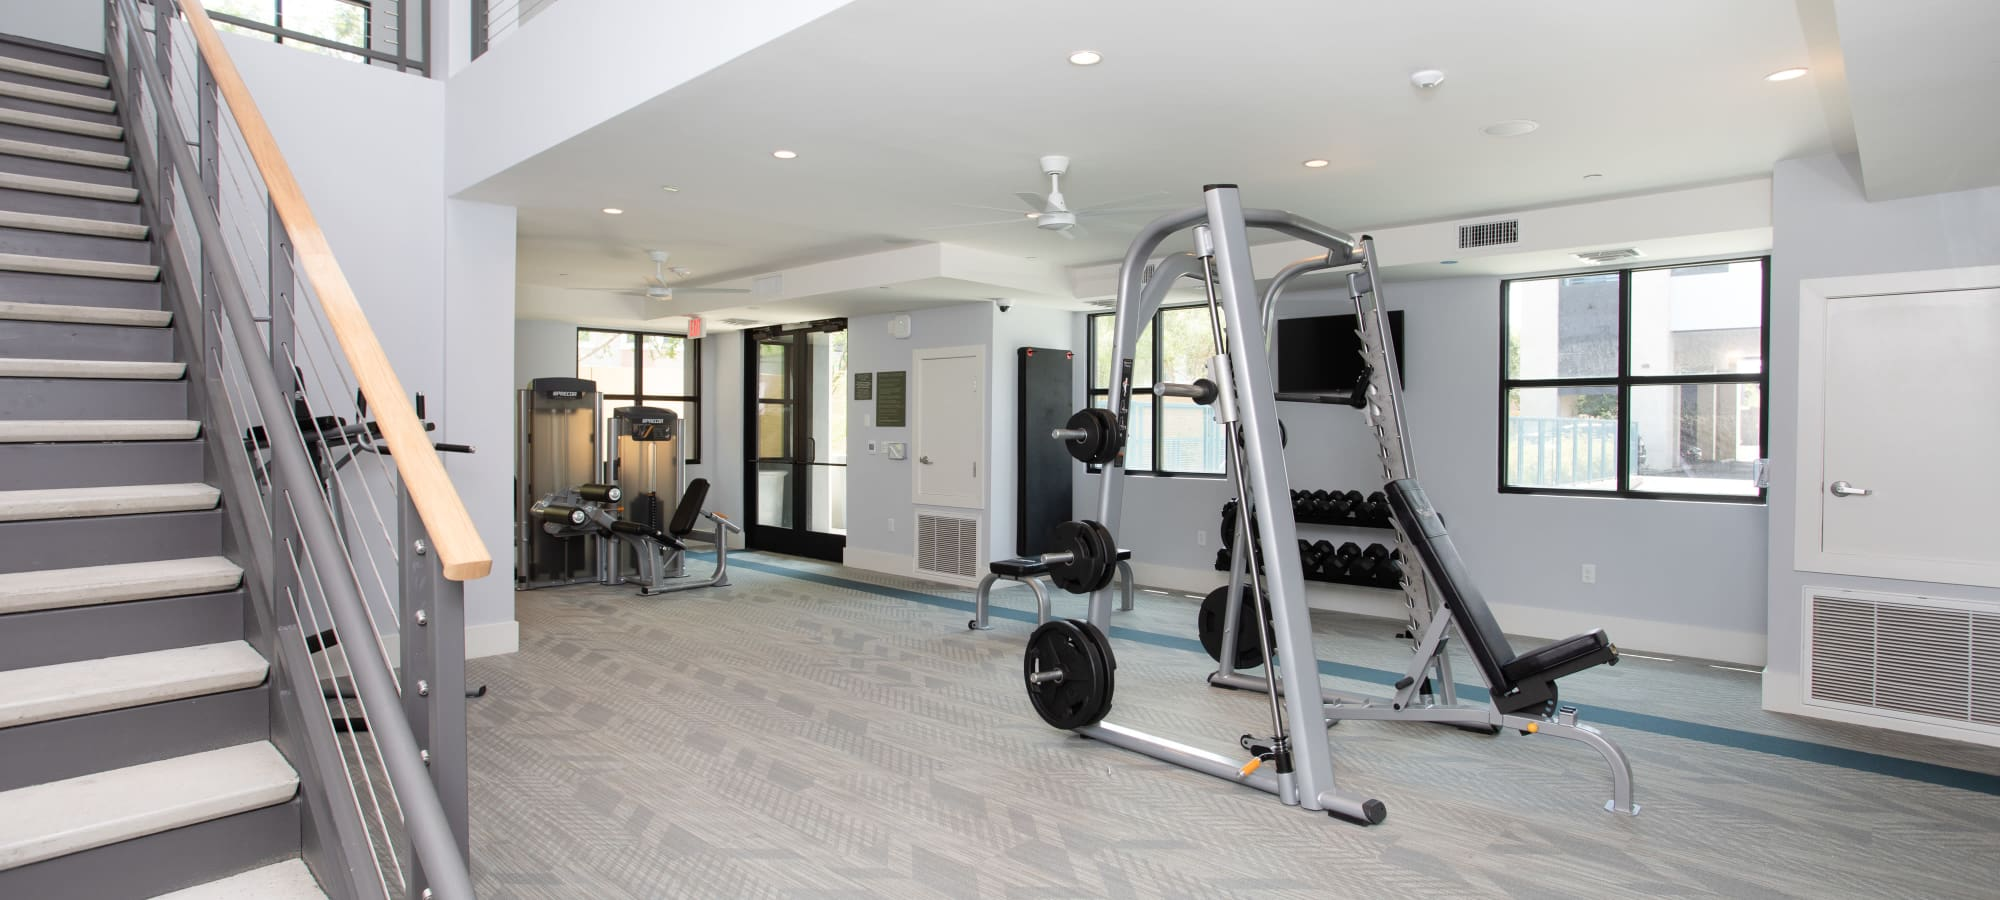 Weight-lifting equipment at Lakeside Drive Apartments in Tempe, Arizona